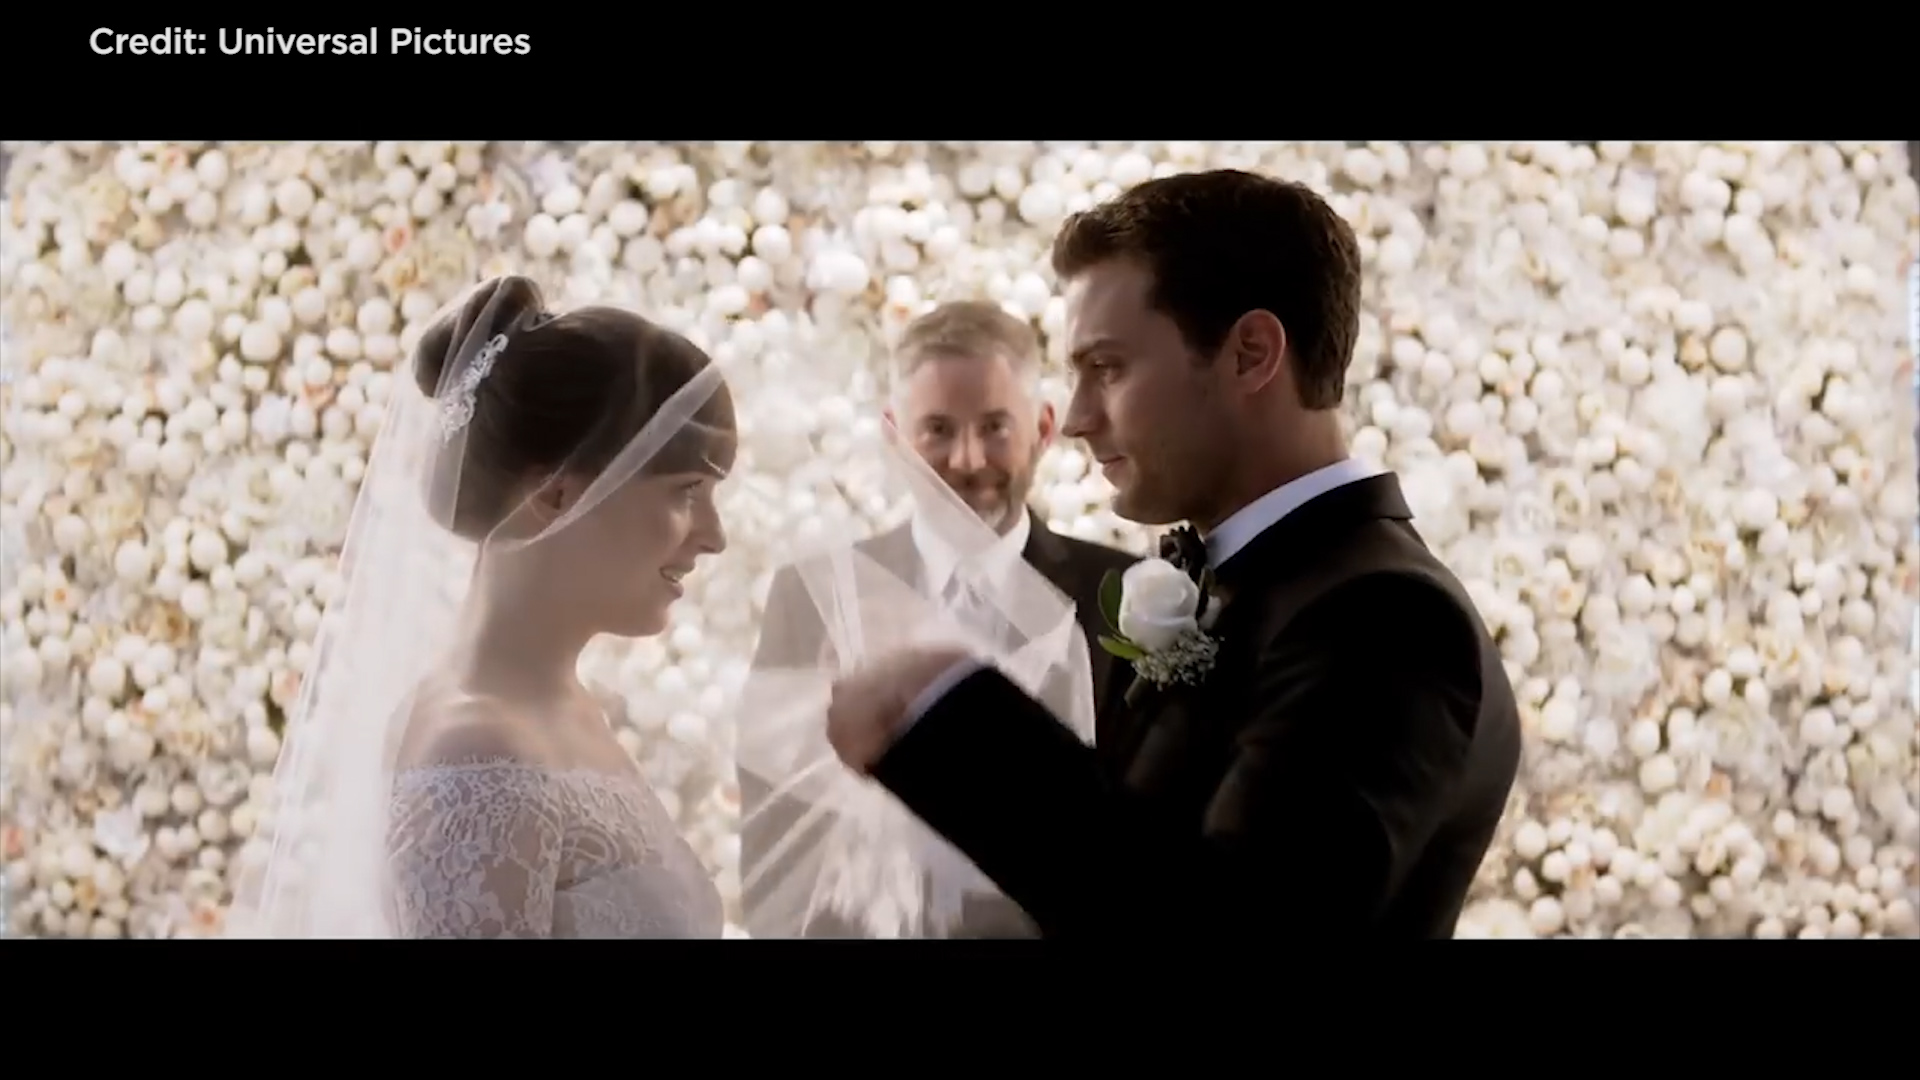 Floor Movie Fifty Shades Freed Watch News Videos Online Fifty Shades Freed Watch Online Youtube Fifty Shades Freed Watch Online 1080p houzz-03 Fifty Shades Freed Watch Online